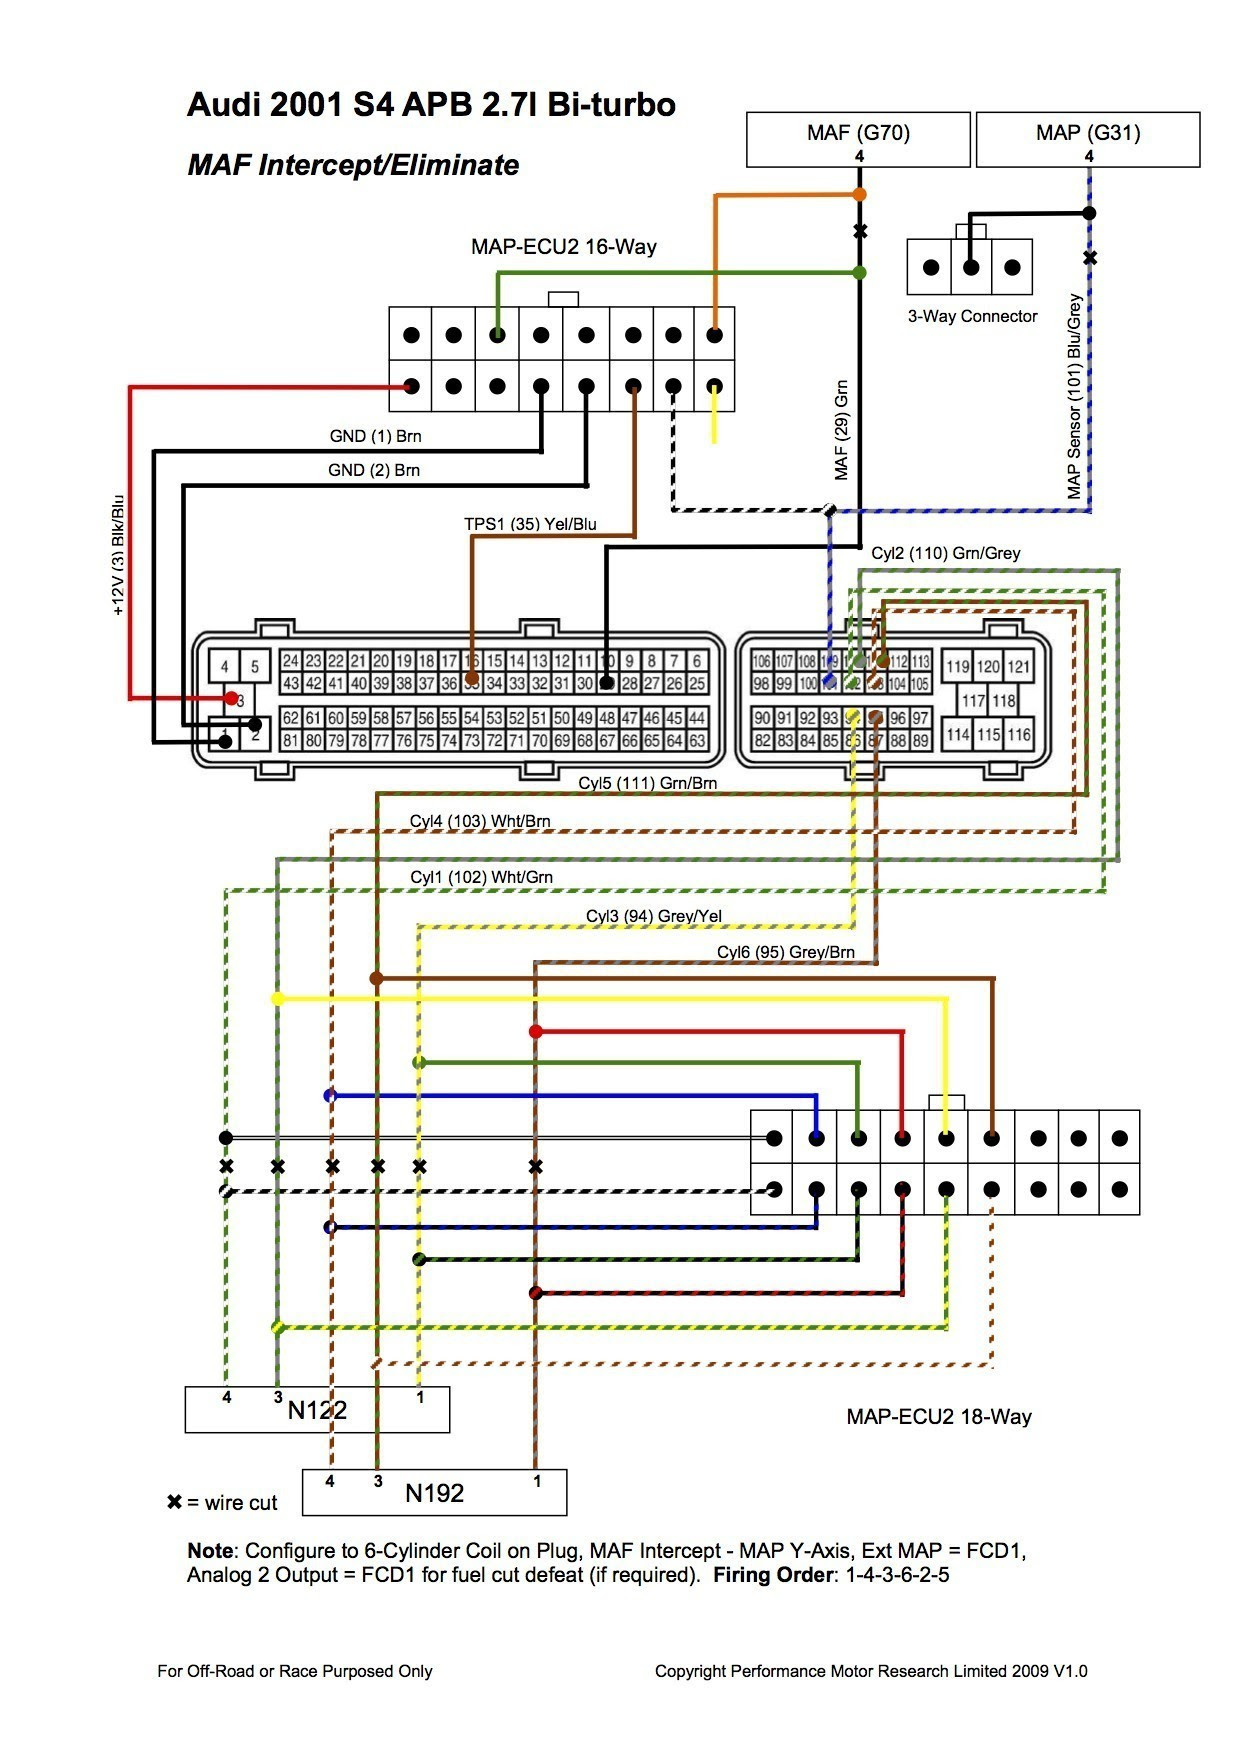 DIAGRAM] Mazda 3 Radio Wiring Diagram FULL Version HD Quality Wiring Diagram  - BUNDIAGRAMS.CYBERSPASS.FRcyberspass.fr